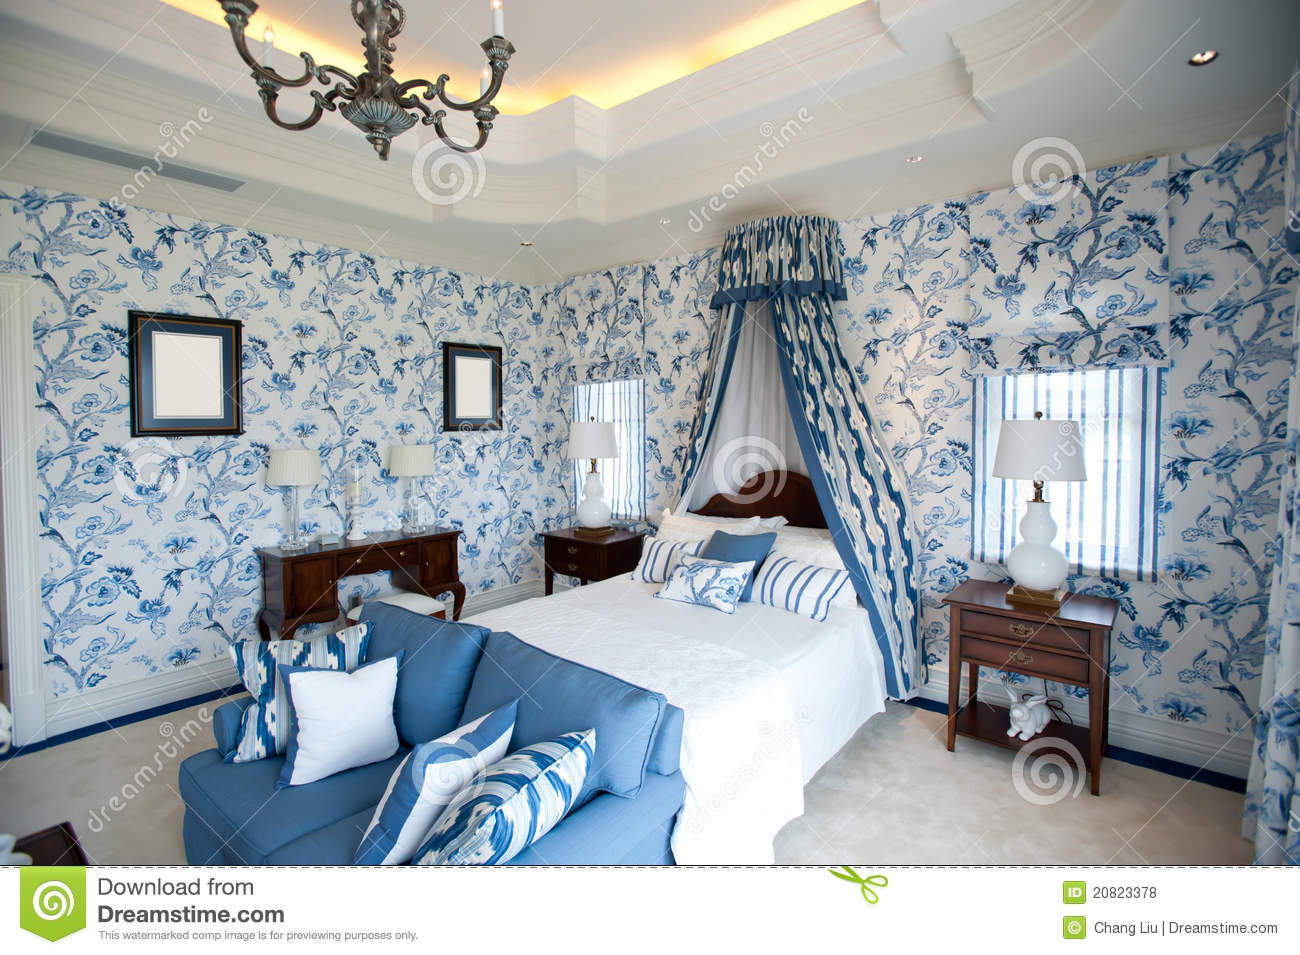 chambre coucher avec le papier peint bleu de fleur photos libres de droits image 20823378. Black Bedroom Furniture Sets. Home Design Ideas